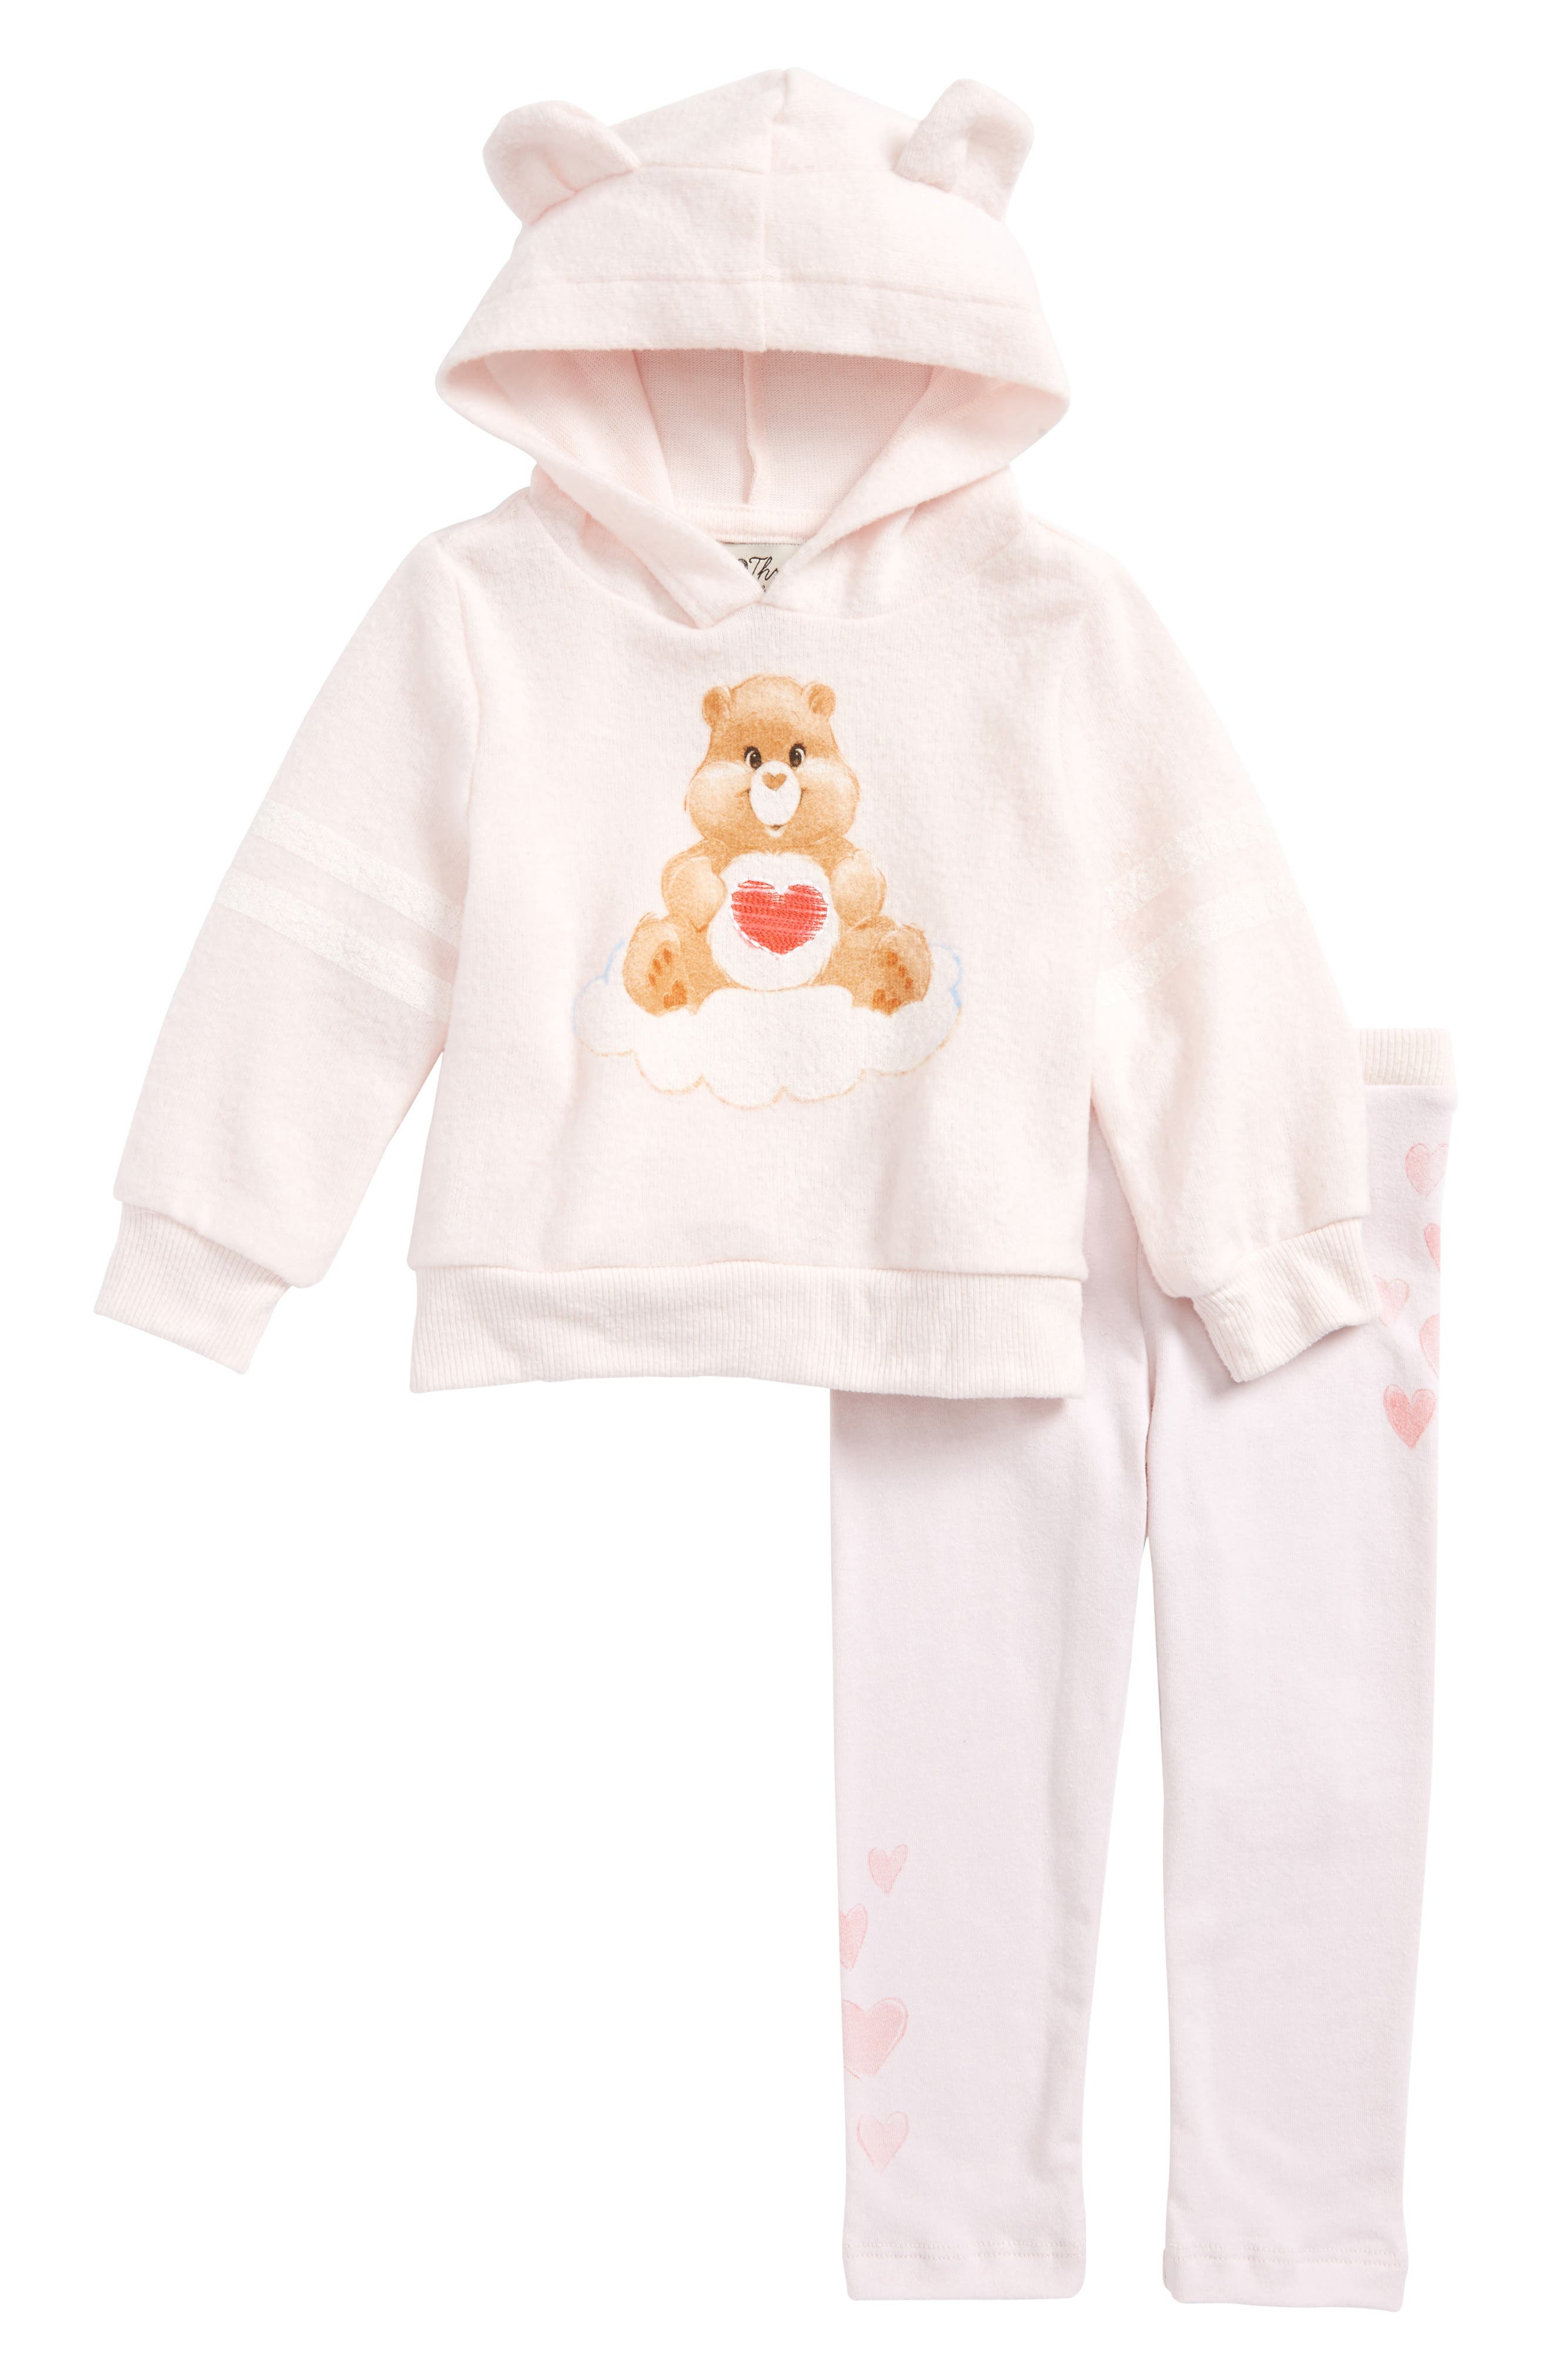 Main Image - Care Bears™ by Fine Threads Hoodie & Sweatpants Set (Toddler Girls & Little Girls)